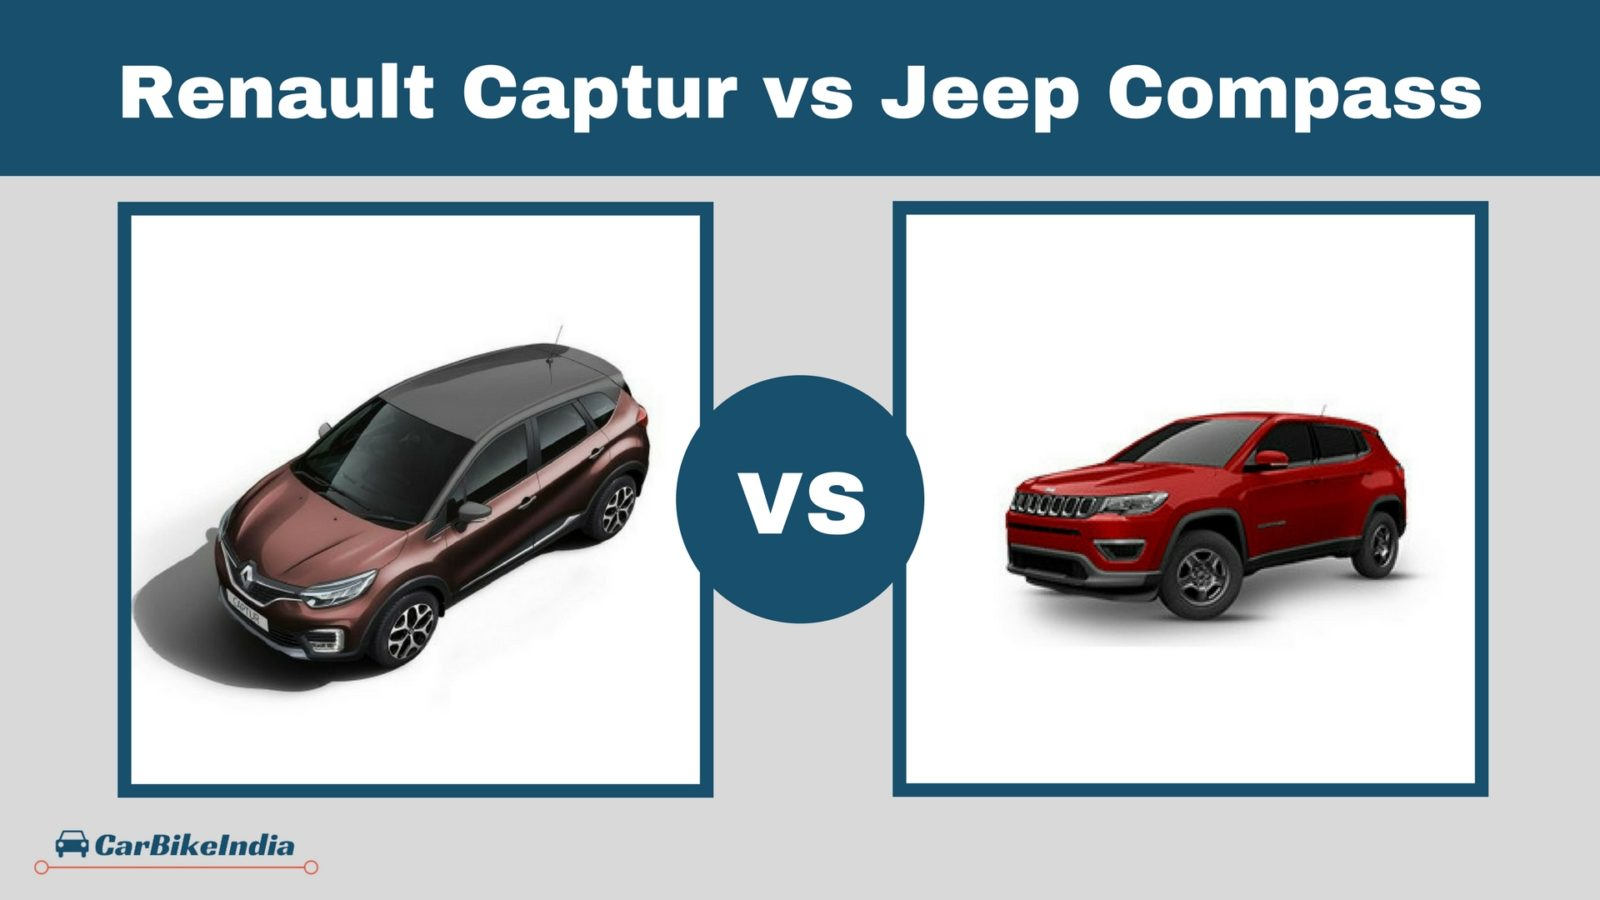 Renault Captur vs Jeep Compass Comparison